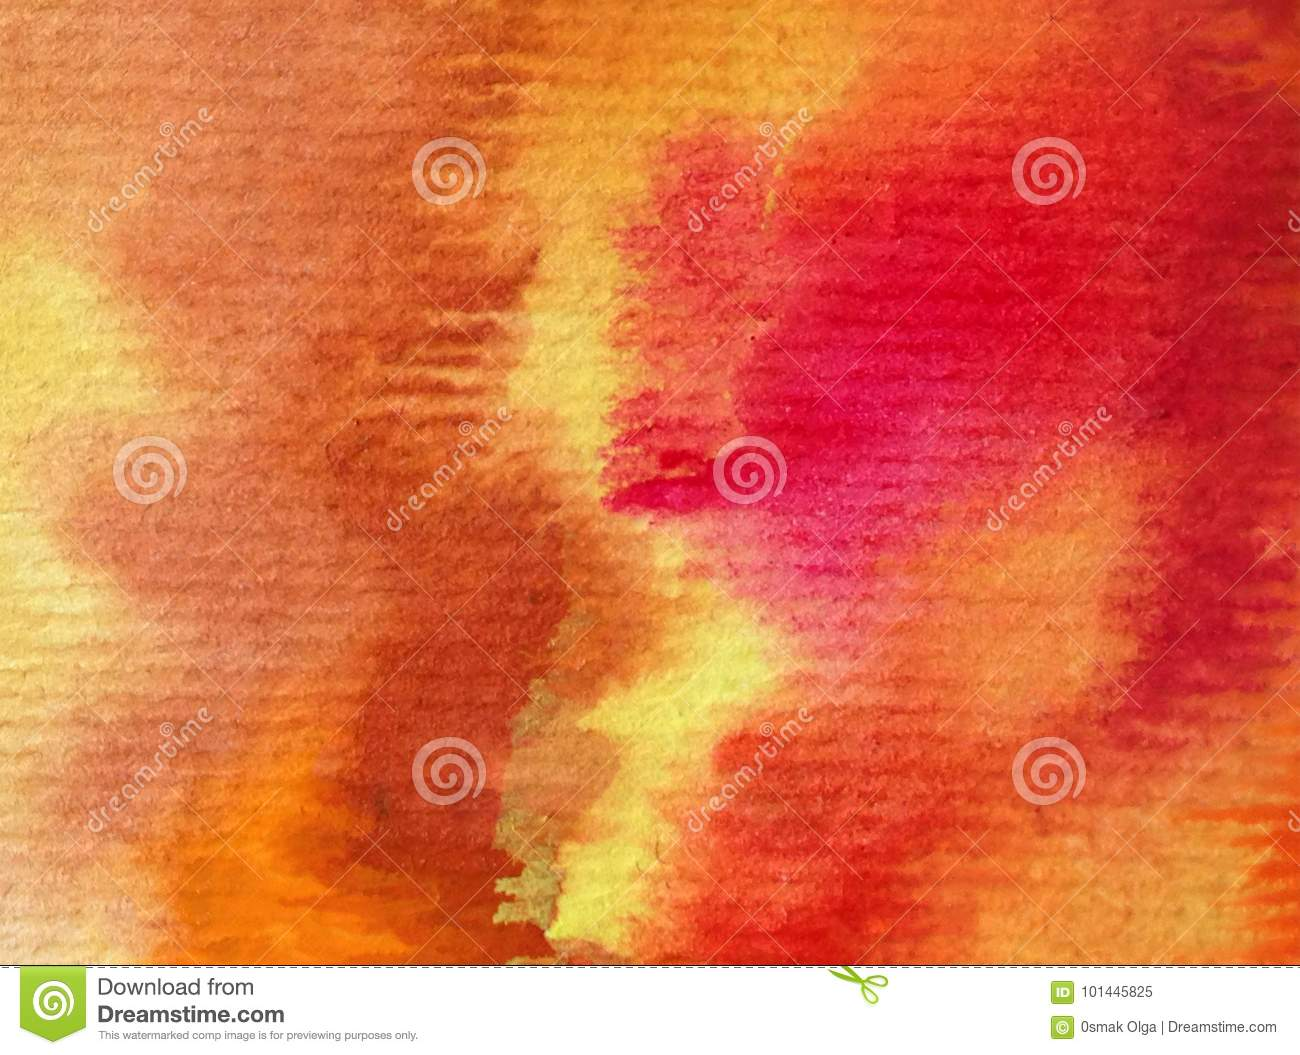 Watercolor art background abstract autumn colorful textured warm strokes